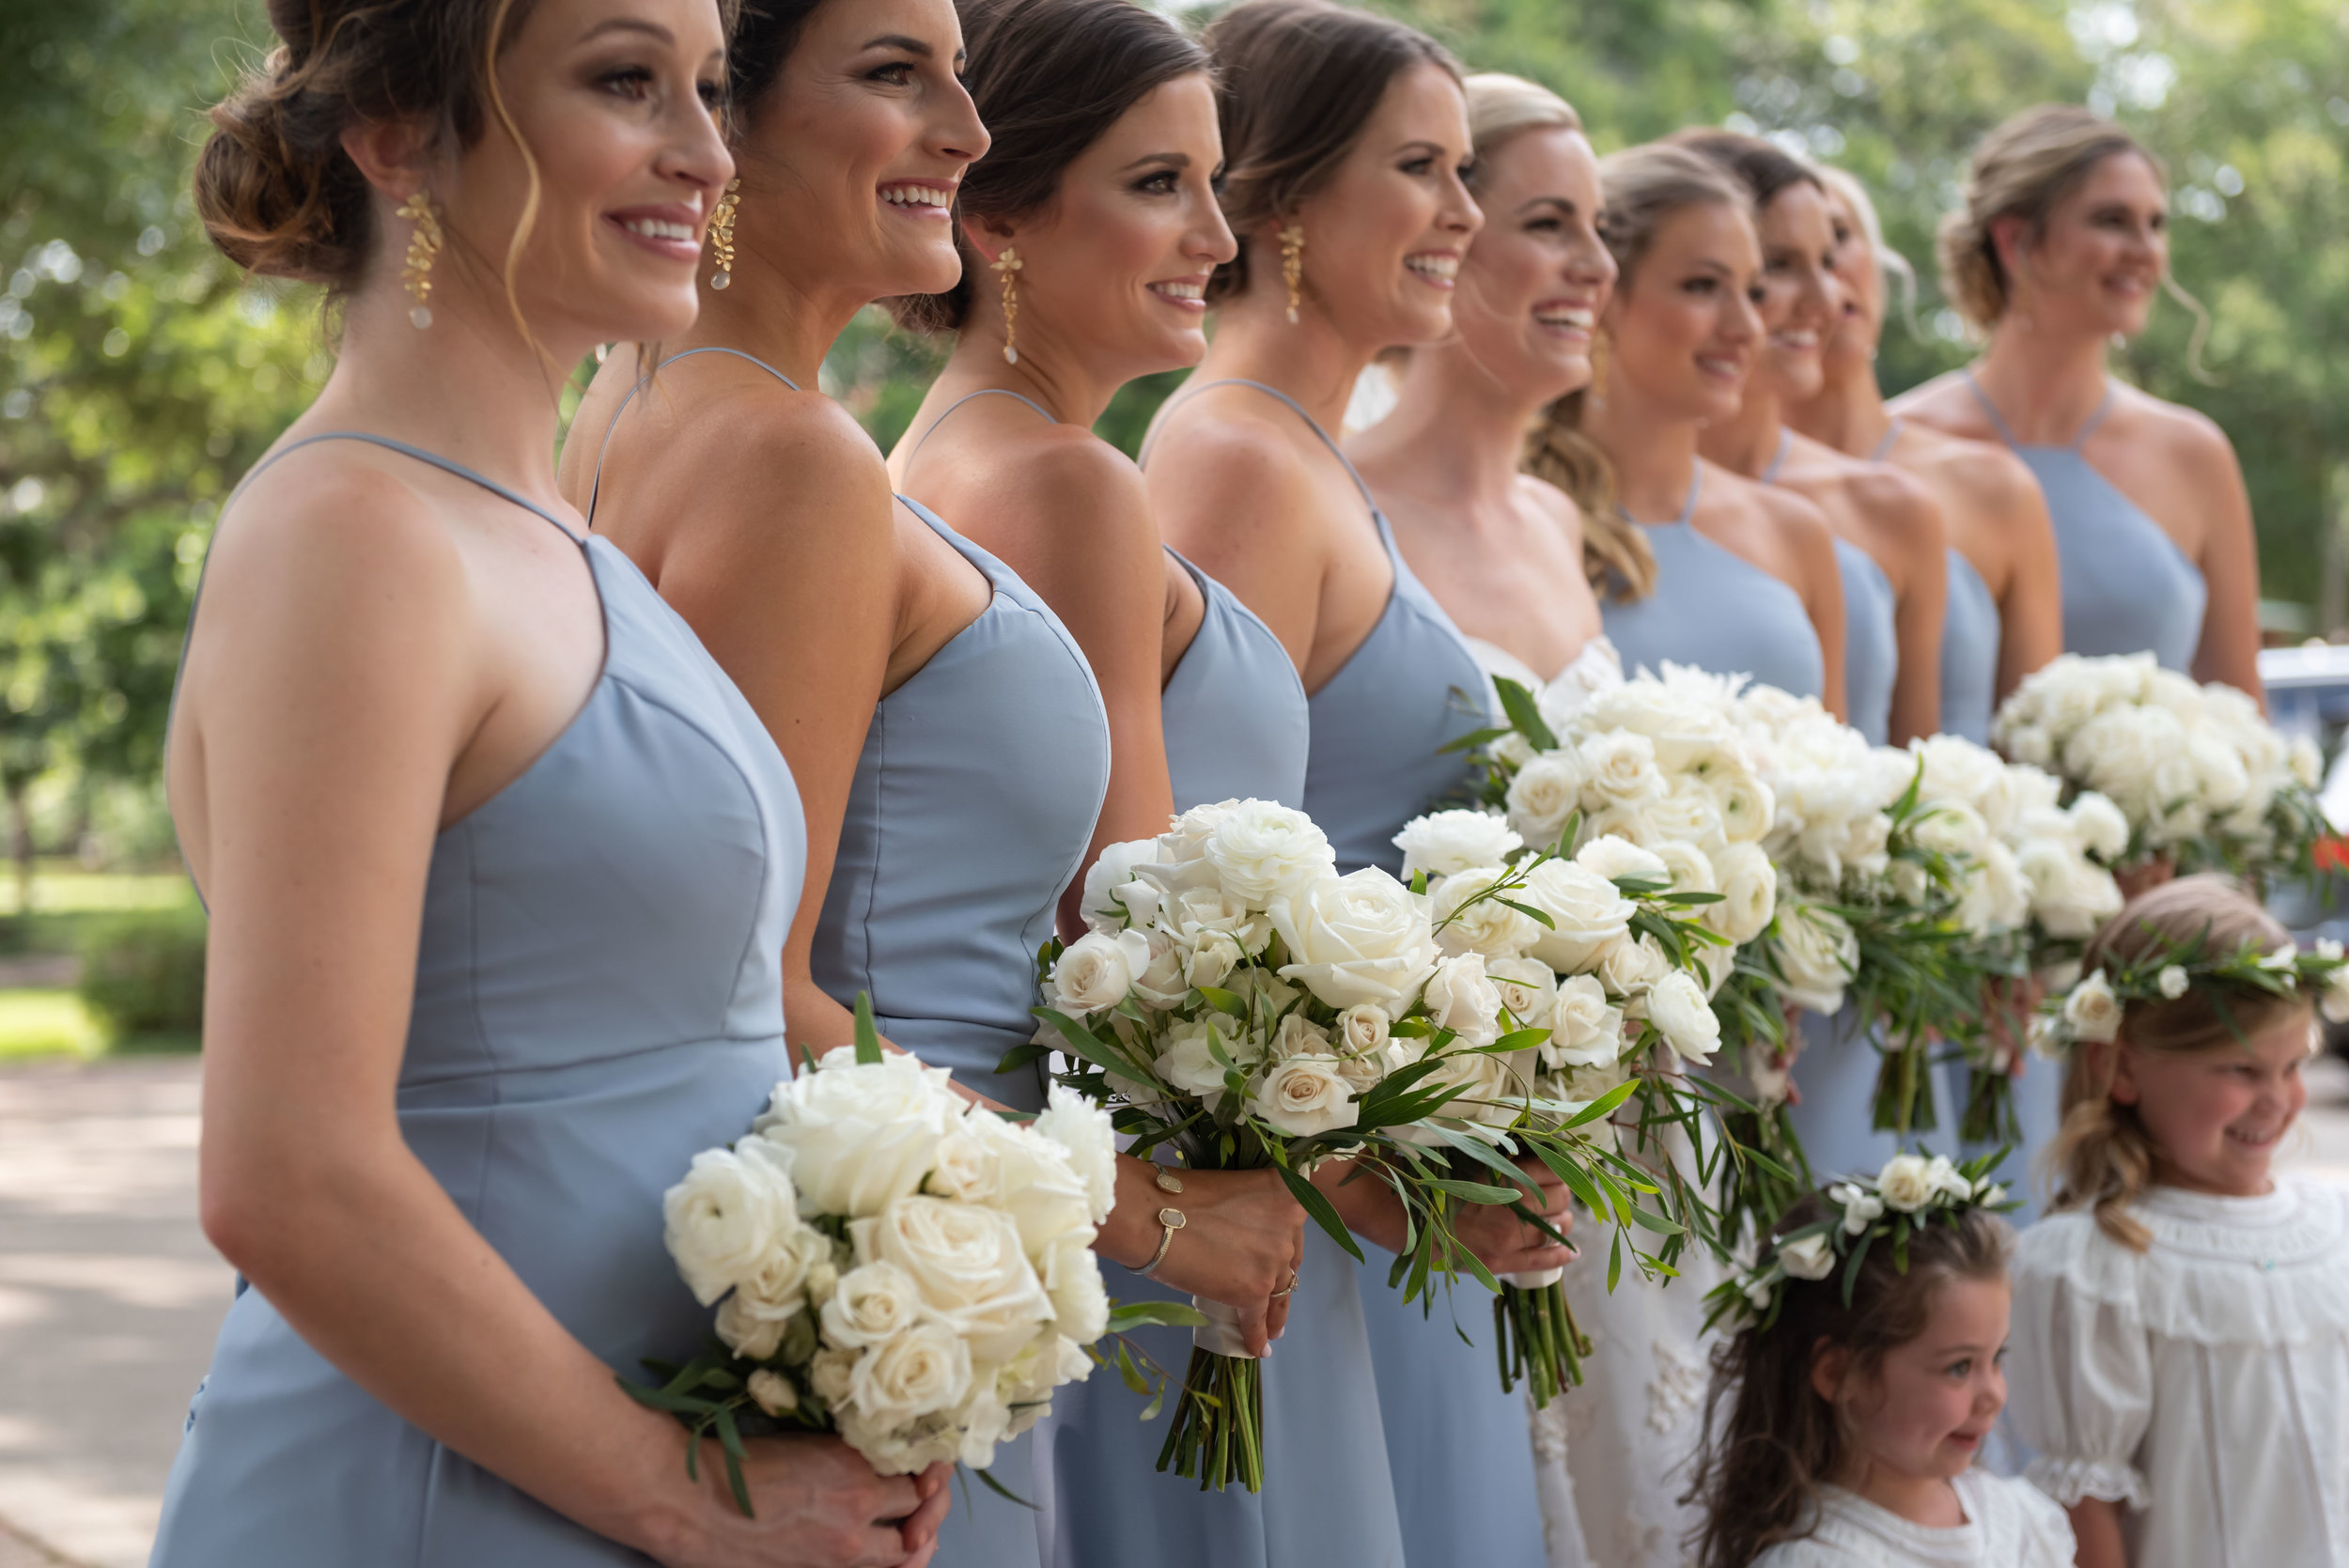 Southern Fete, Southern Wedding, Flowers by Rodney, Periwinkle Bridesmaids dresses, Jay Faugot Photography